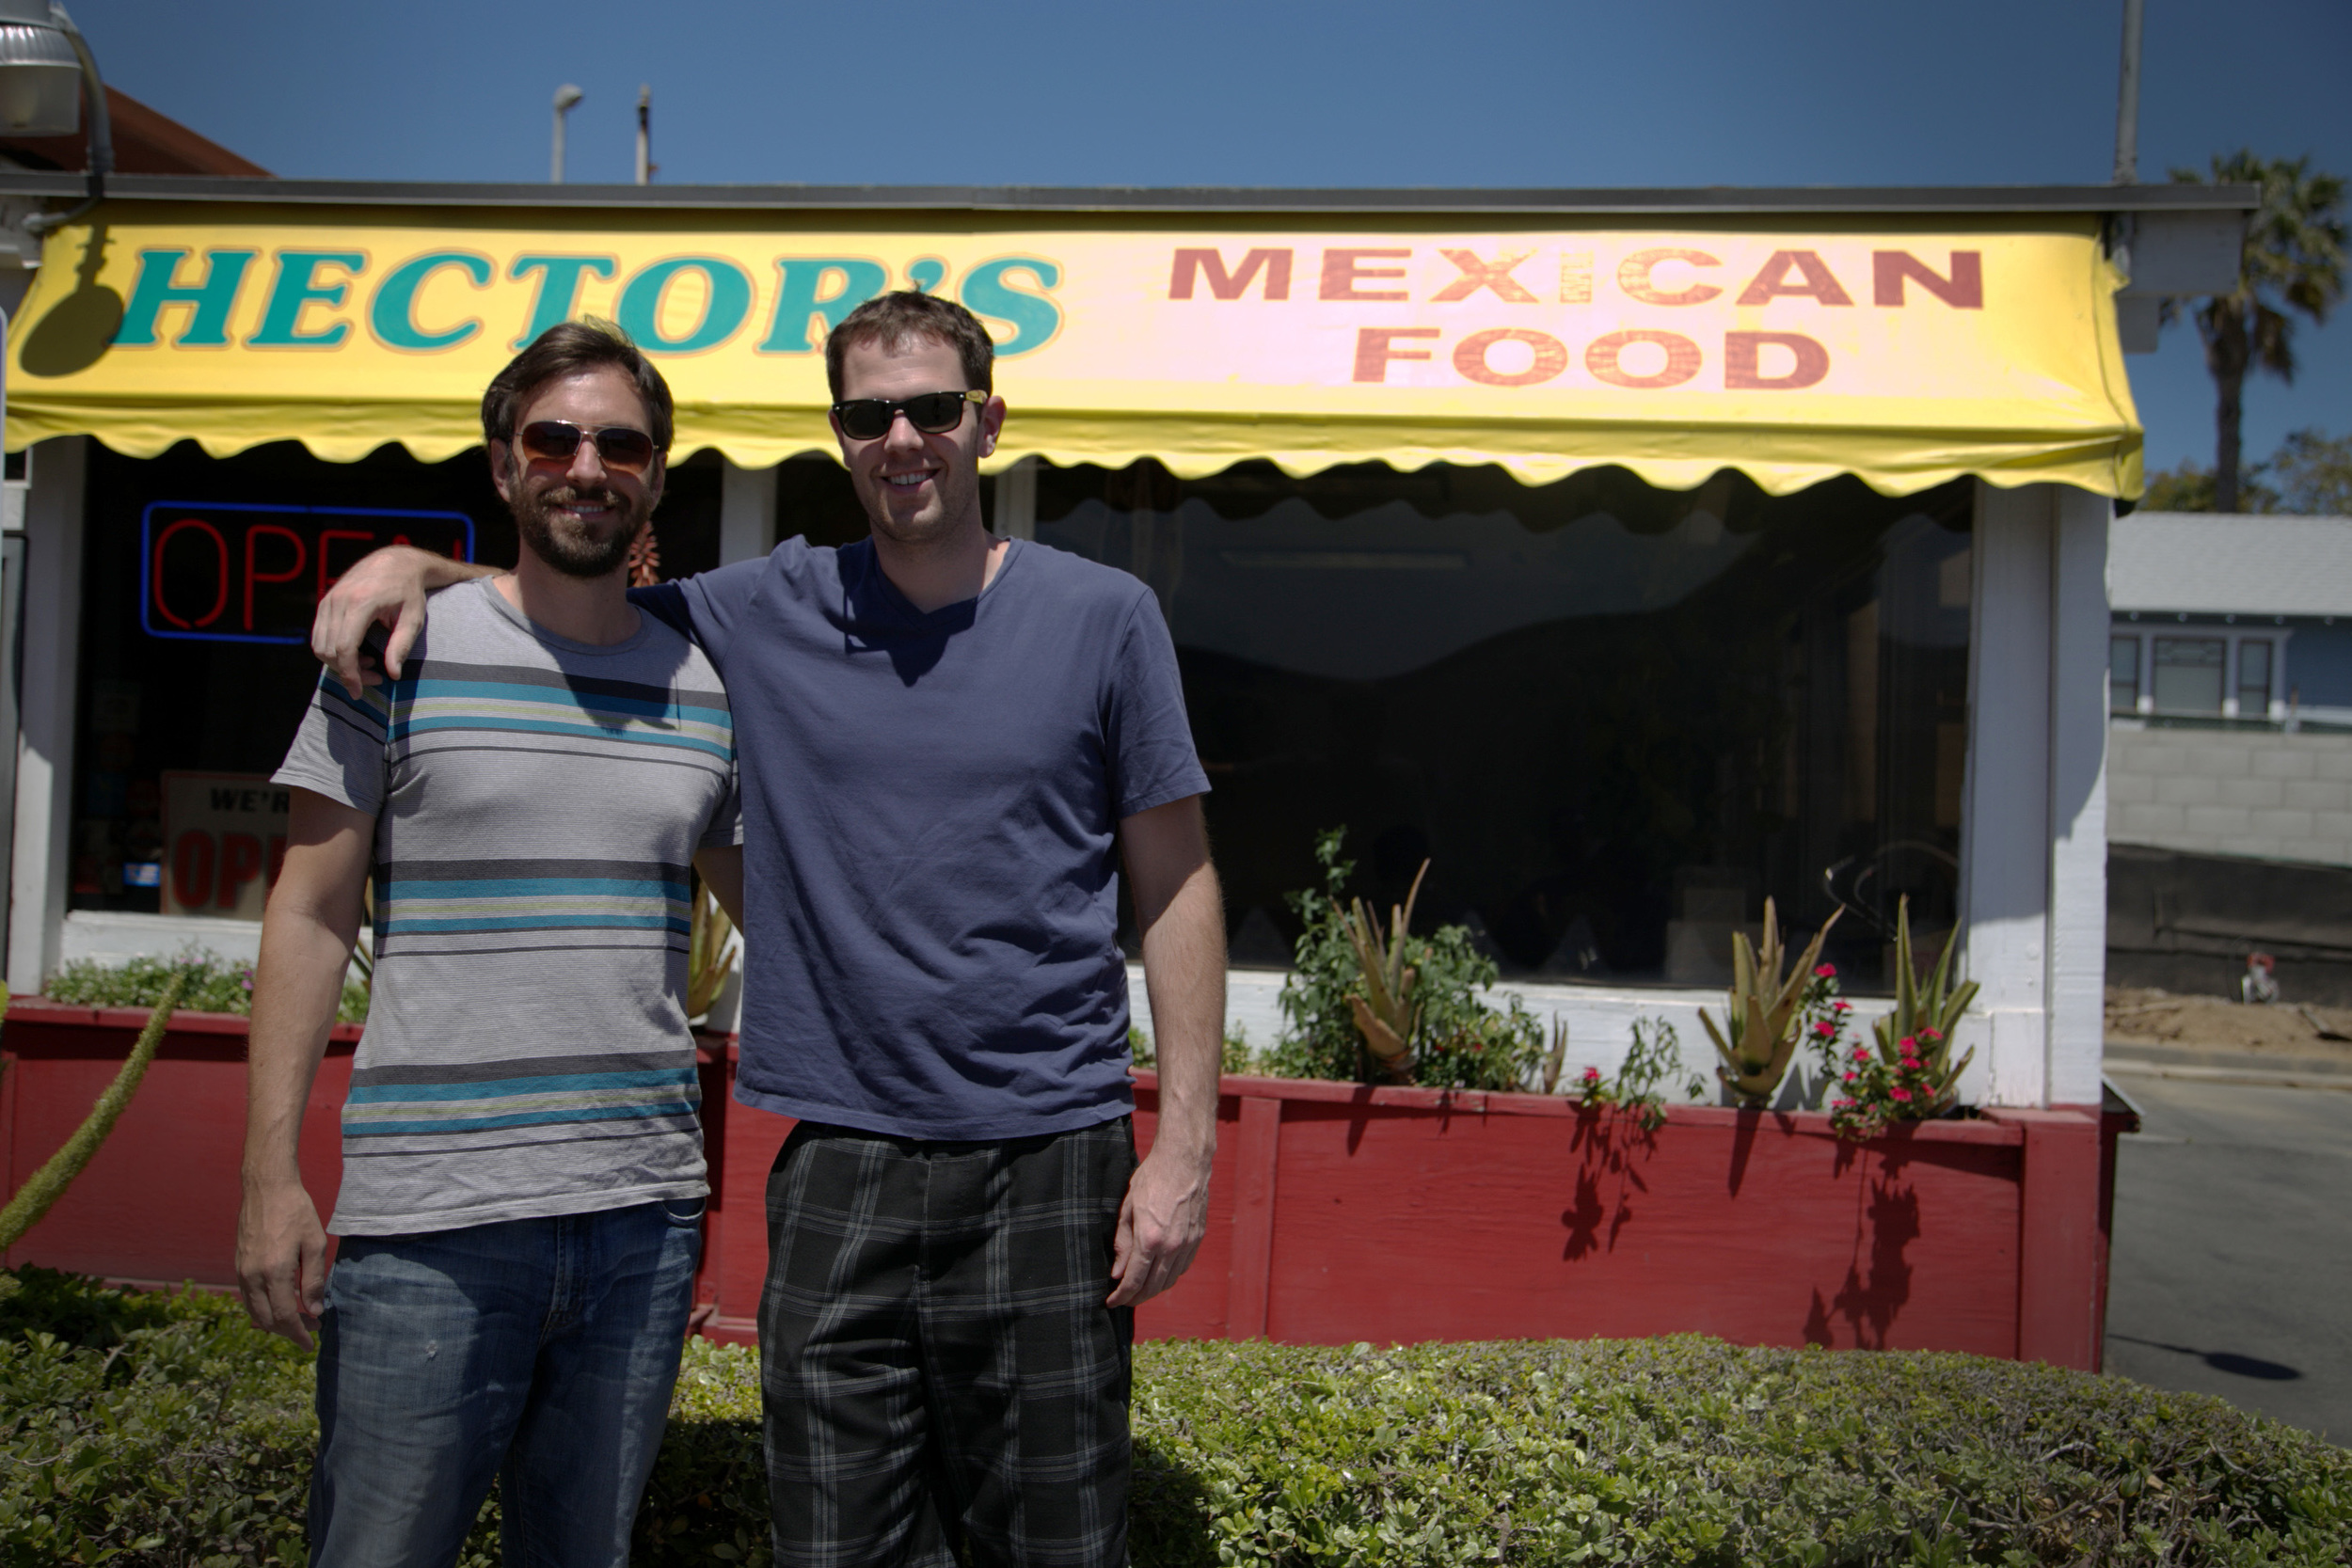 Hector's Mexican food - John's favorite